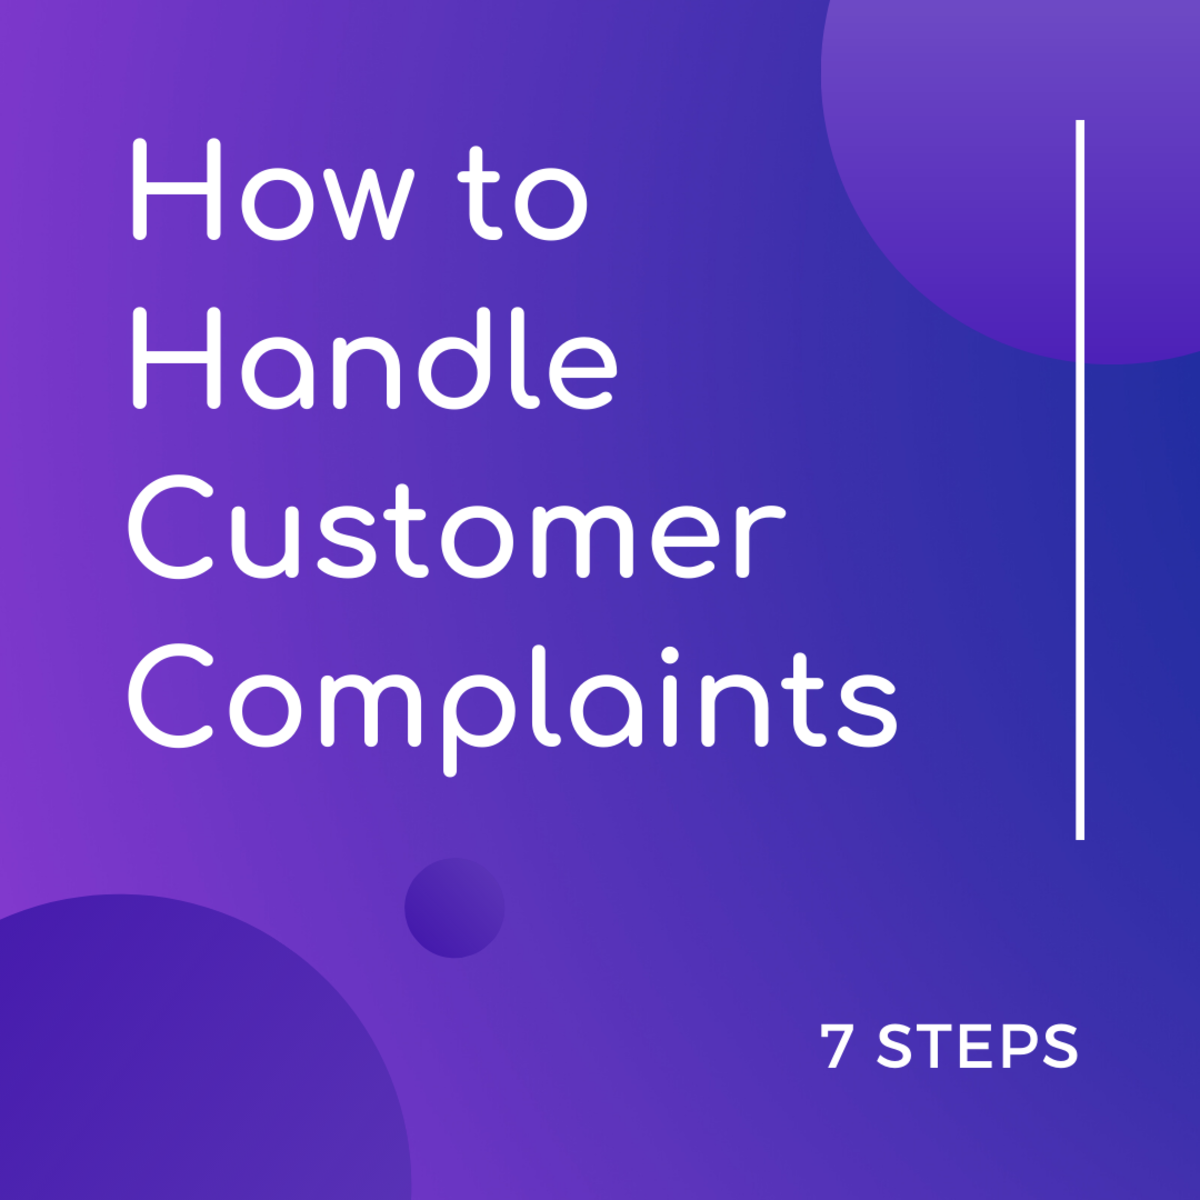 7 Steps for Handling Customer Complaints